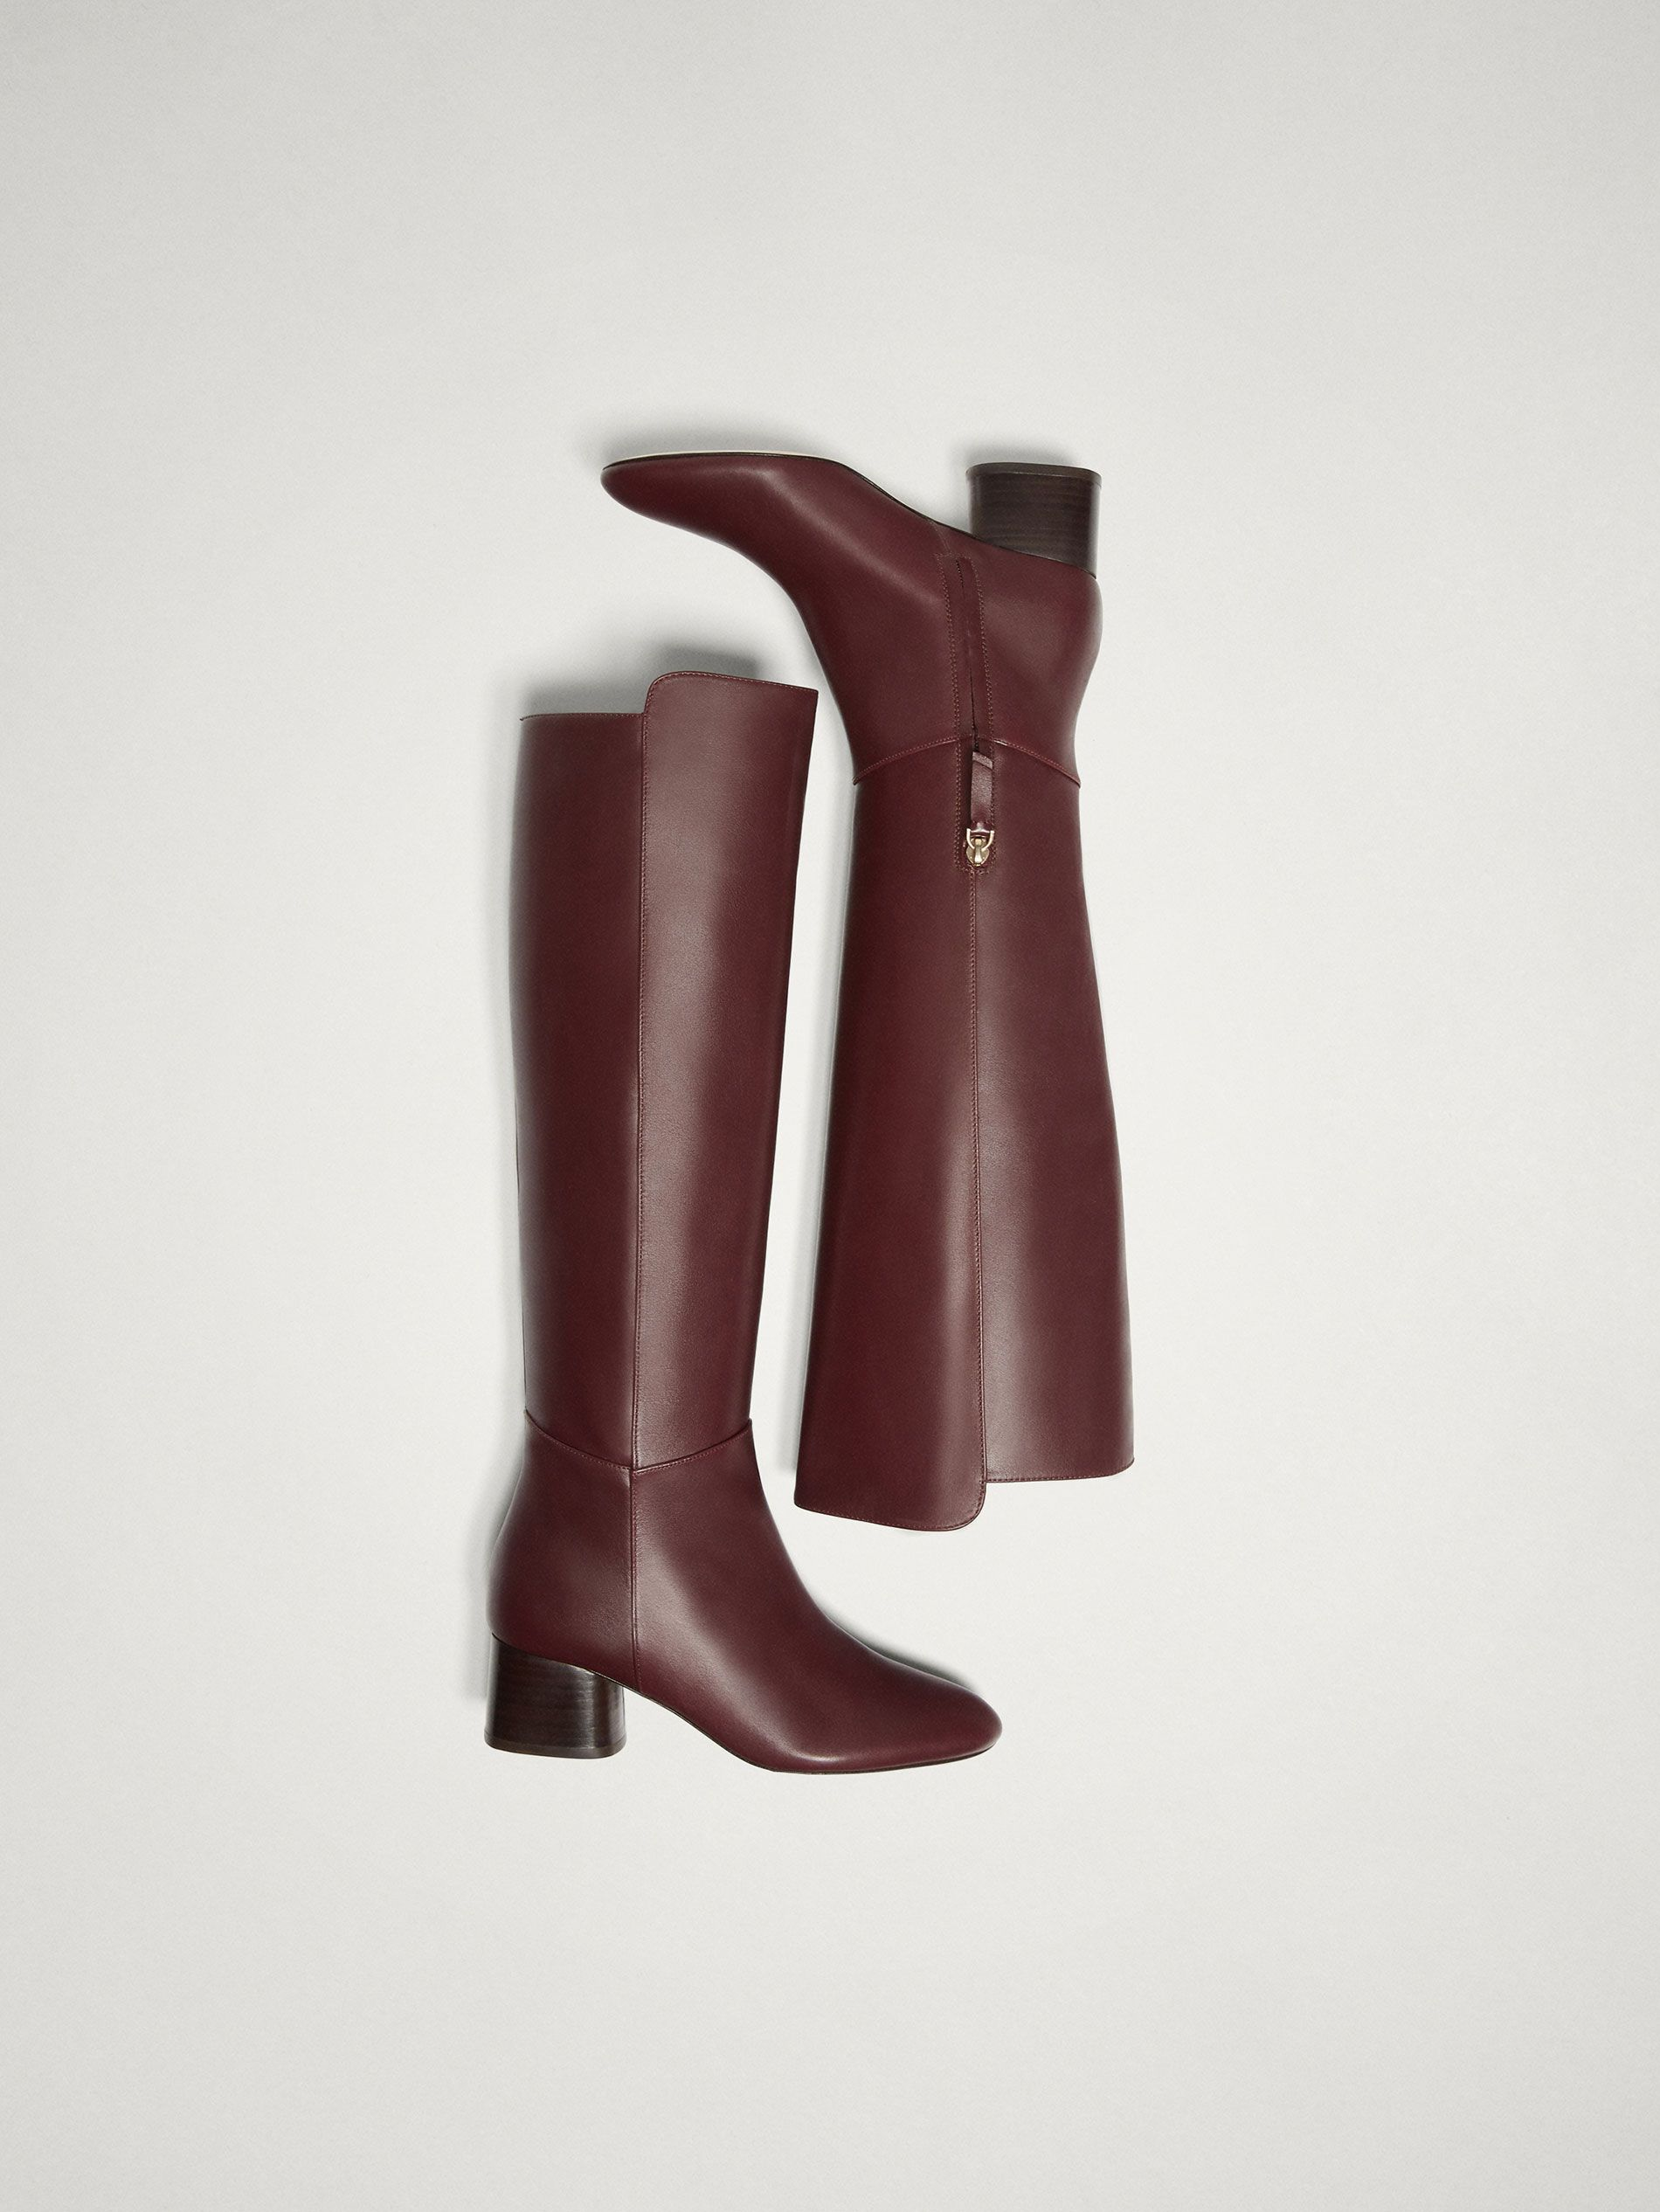 5ab34363552 Image result for BURGUNDY NAPPA LEATHER BOOTS massimo dutti ...